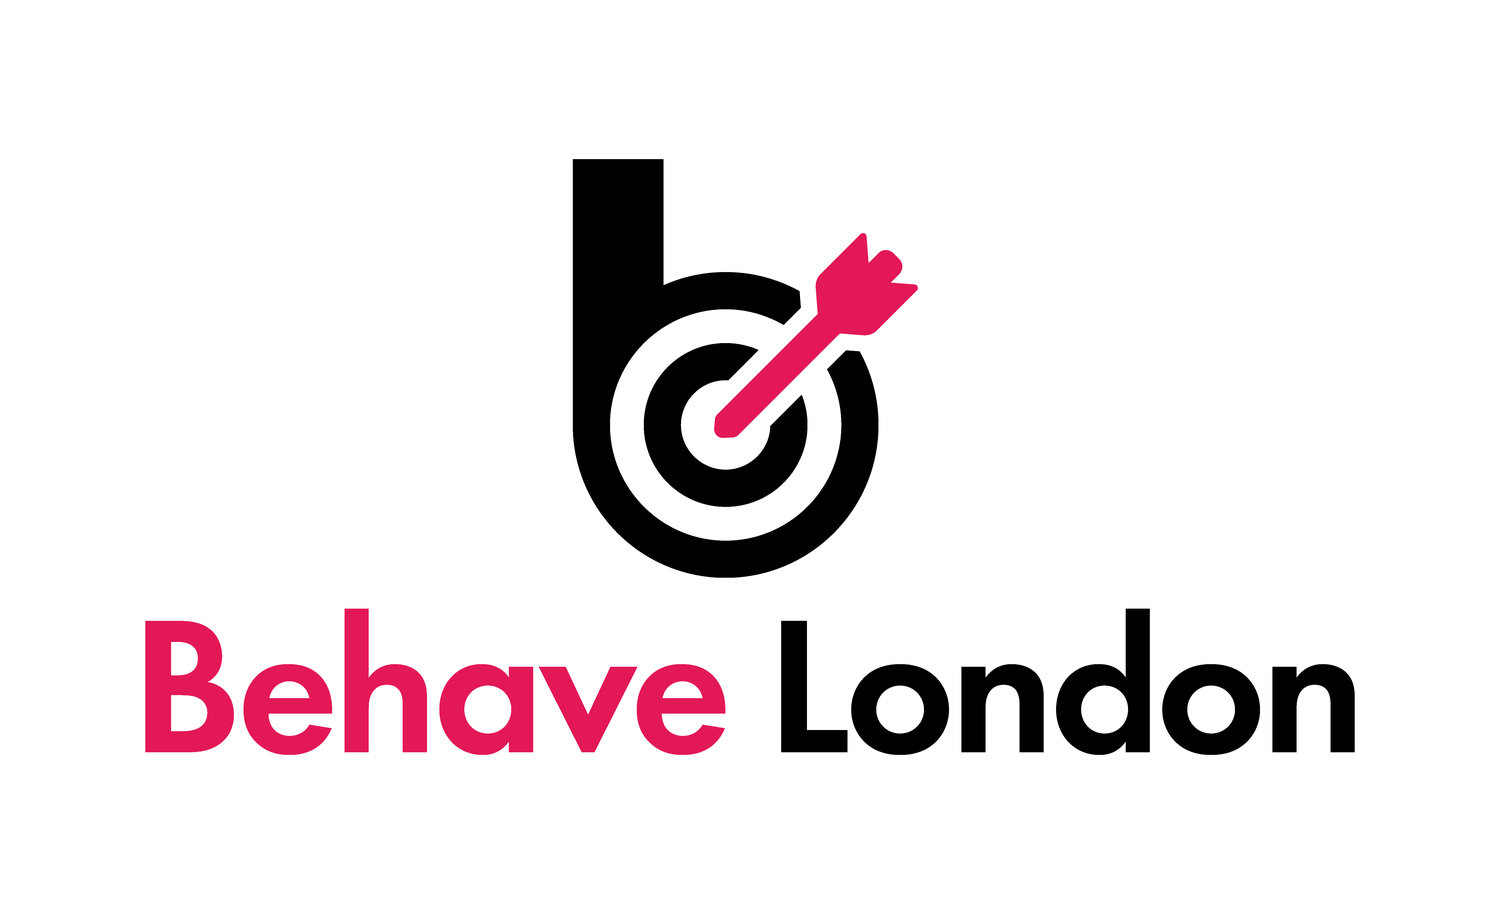 Behave London